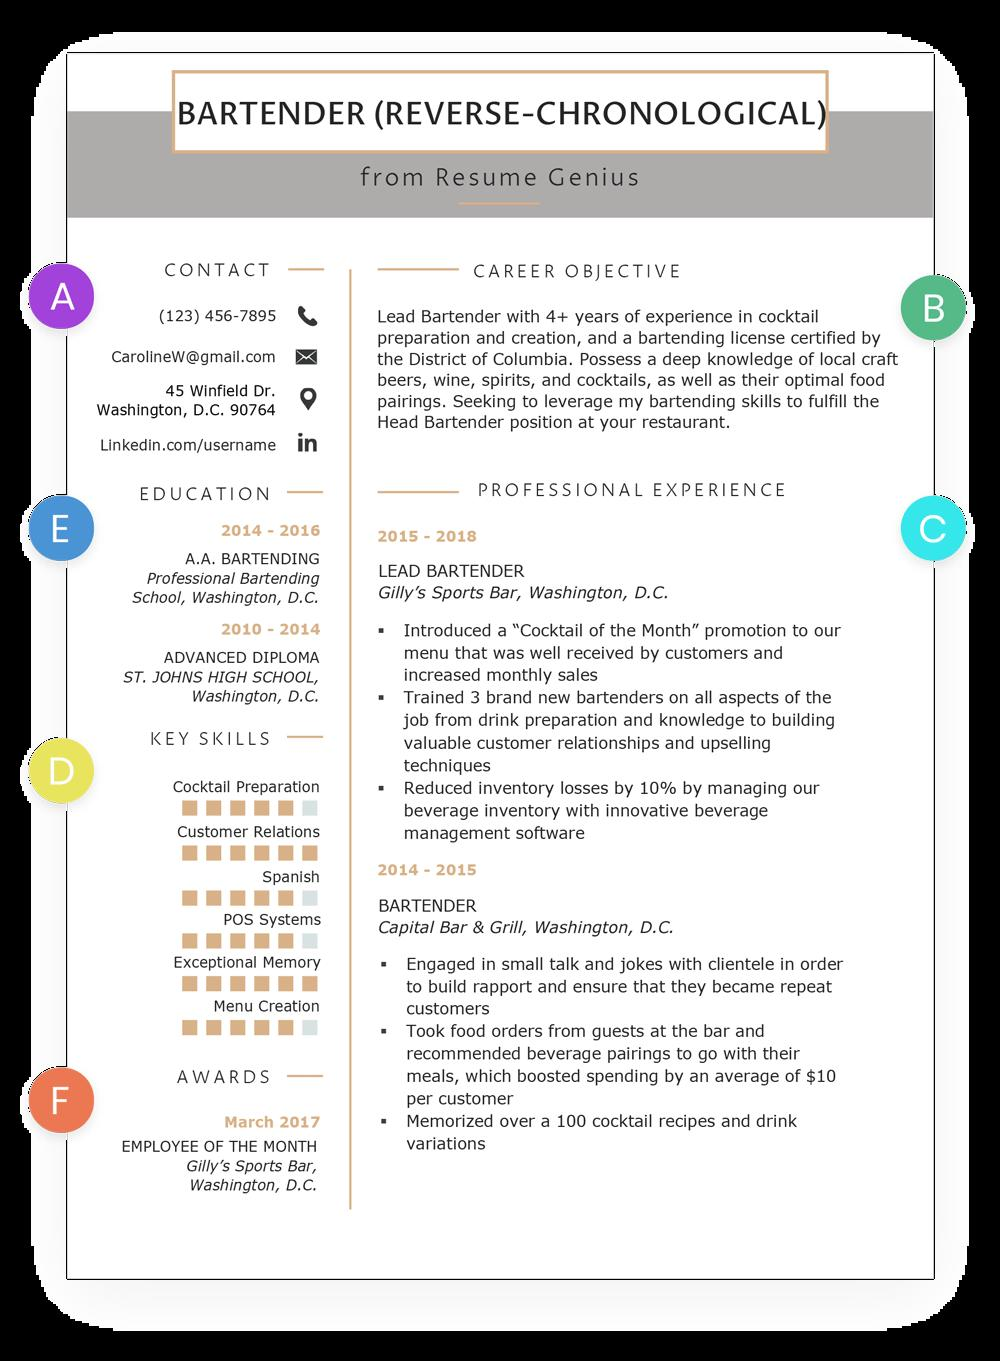 51 Top Resume Format Examples for Design